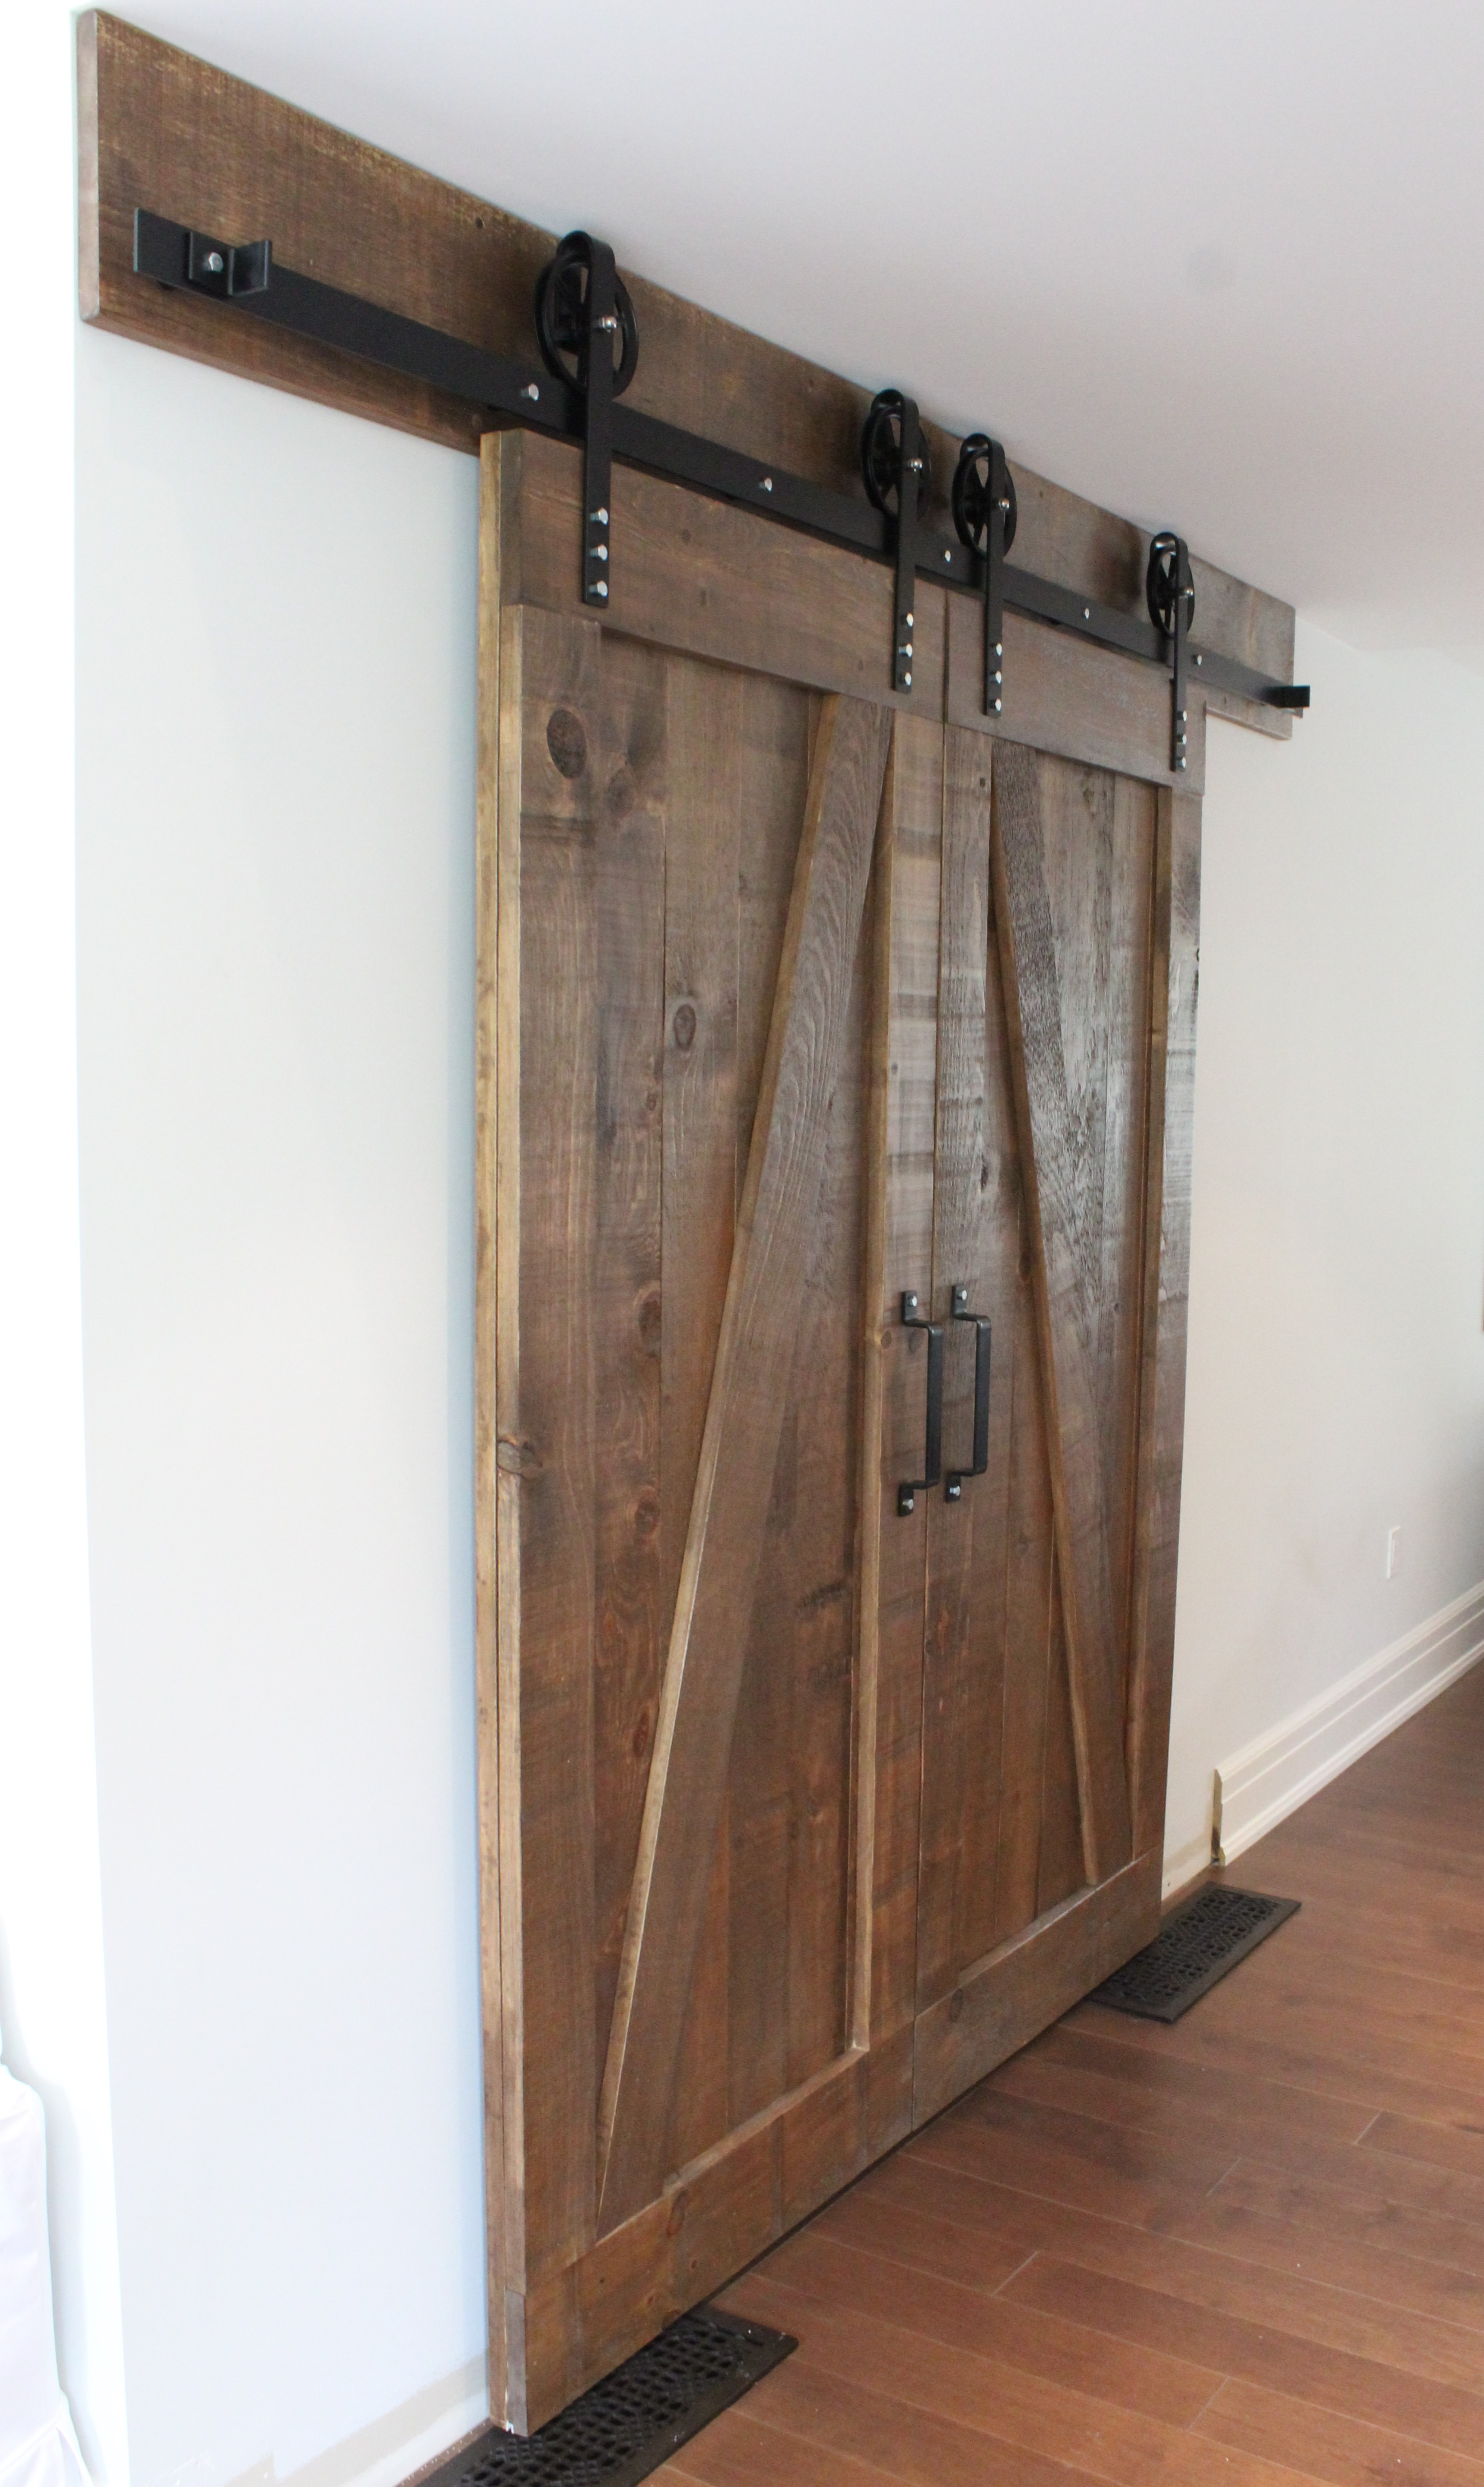 lumberman archive blog hardware category gbt barns furniture goldberg wholesale s projects featured barn door